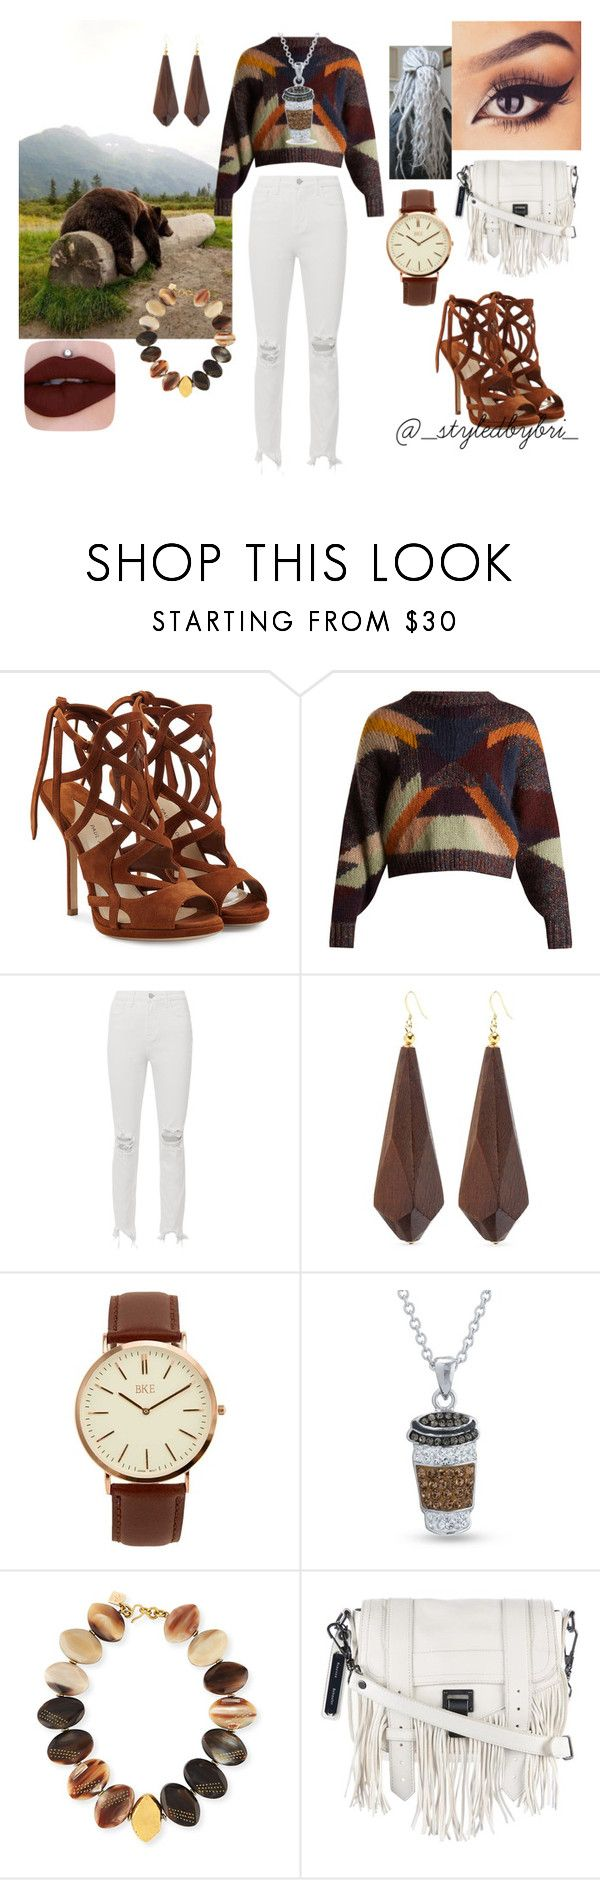 """Dipped In Honey With Little Brown Bear"" by fashionbookofbri ❤ liked on Polyvore featuring Paul Andrew, Isabel Marant, L'Agence, Kenneth Jay Lane, BKE, Belk Silverworks, Ashley Pittman and Proenza Schouler"